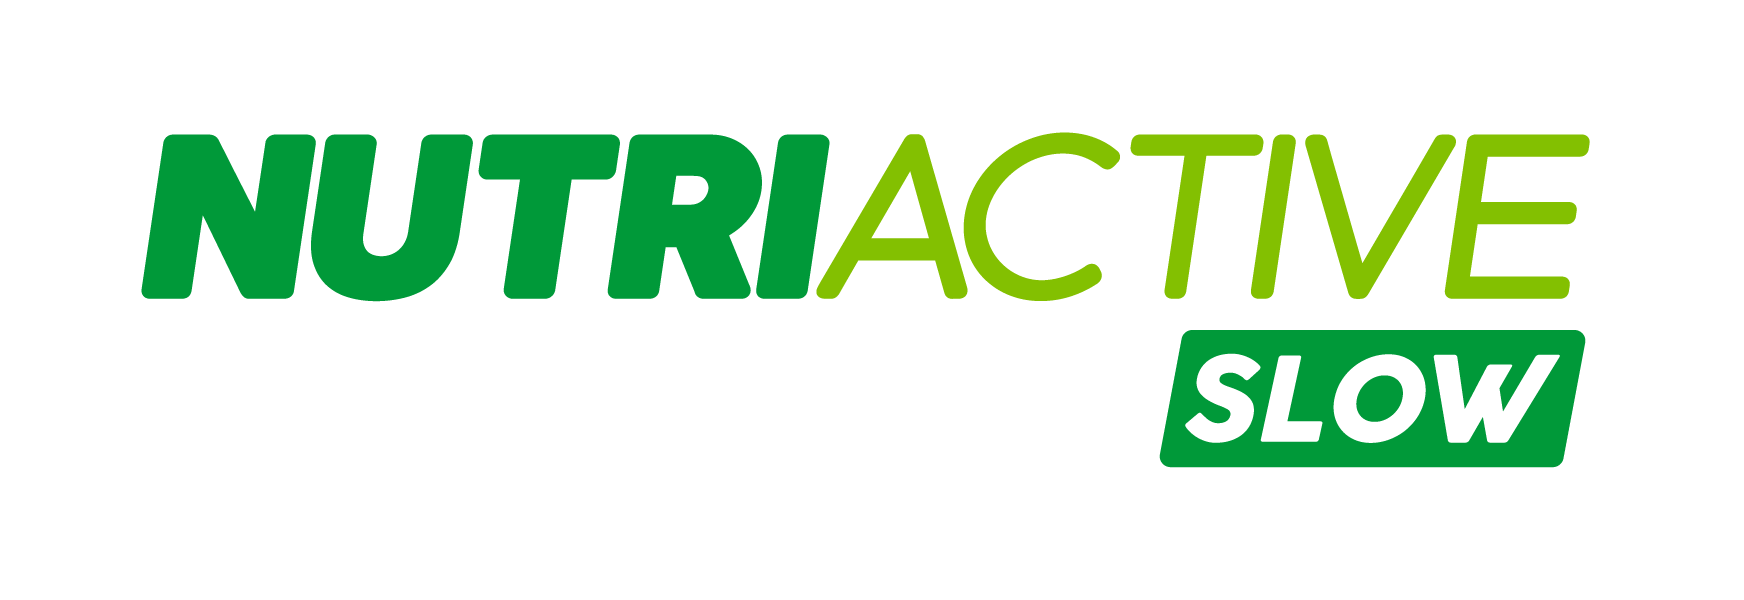 Logo-Nutriactive-Slow-RGB-Full-Color-Plano.png